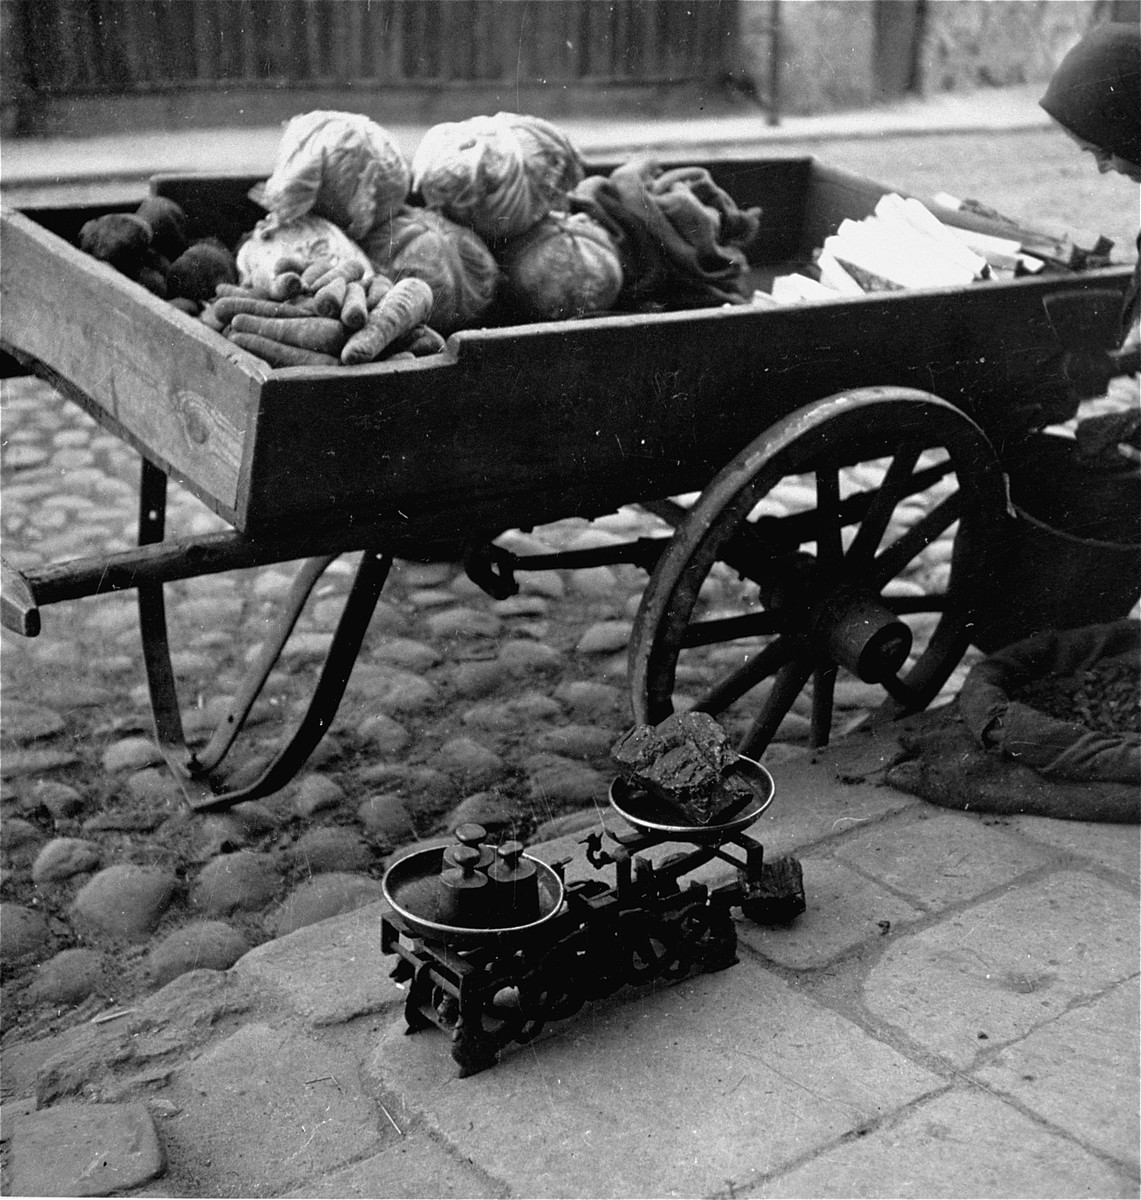 """A woman in the Warsaw ghetto offering vegetables and kindling for sale on the street hacks apart lumps of coal with a hatchet.    Joest's original caption reads: """"This woman had already weighed out a piece of coal on a scale.  She also had roots and coal on her vending cart."""""""